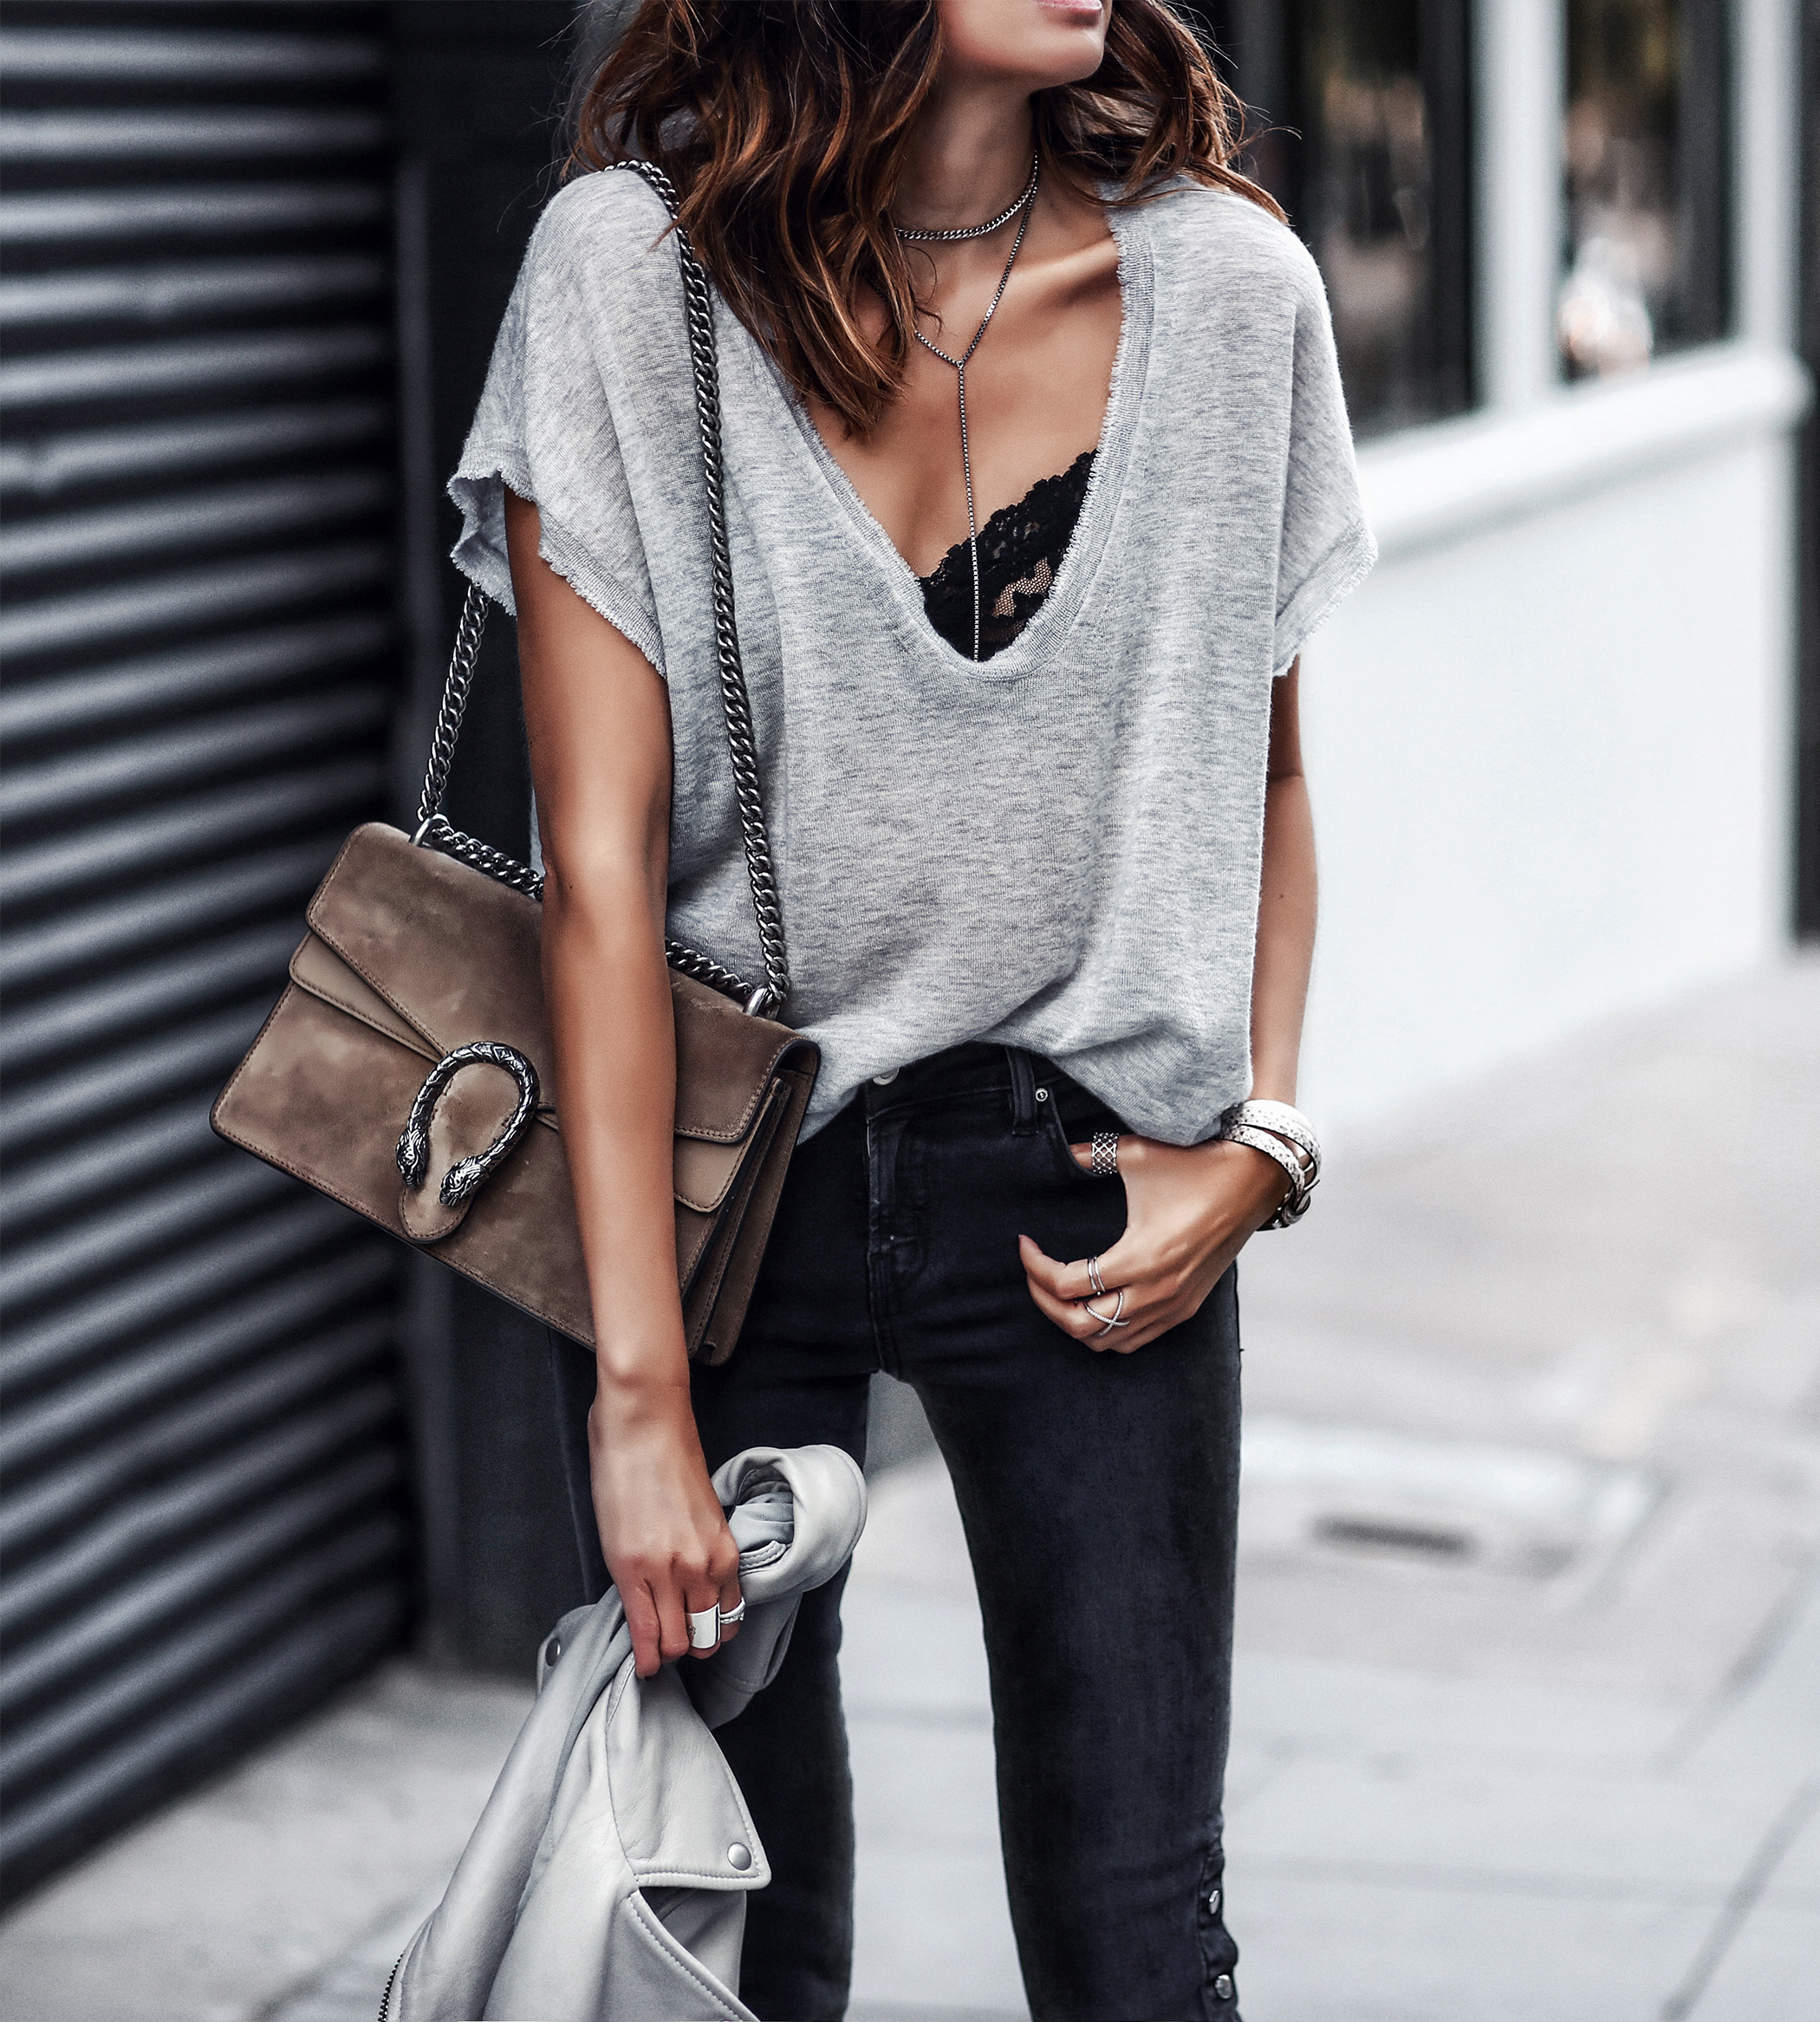 oversized gray tshirt, black lace bralette, black skinny jeans, gucci bag